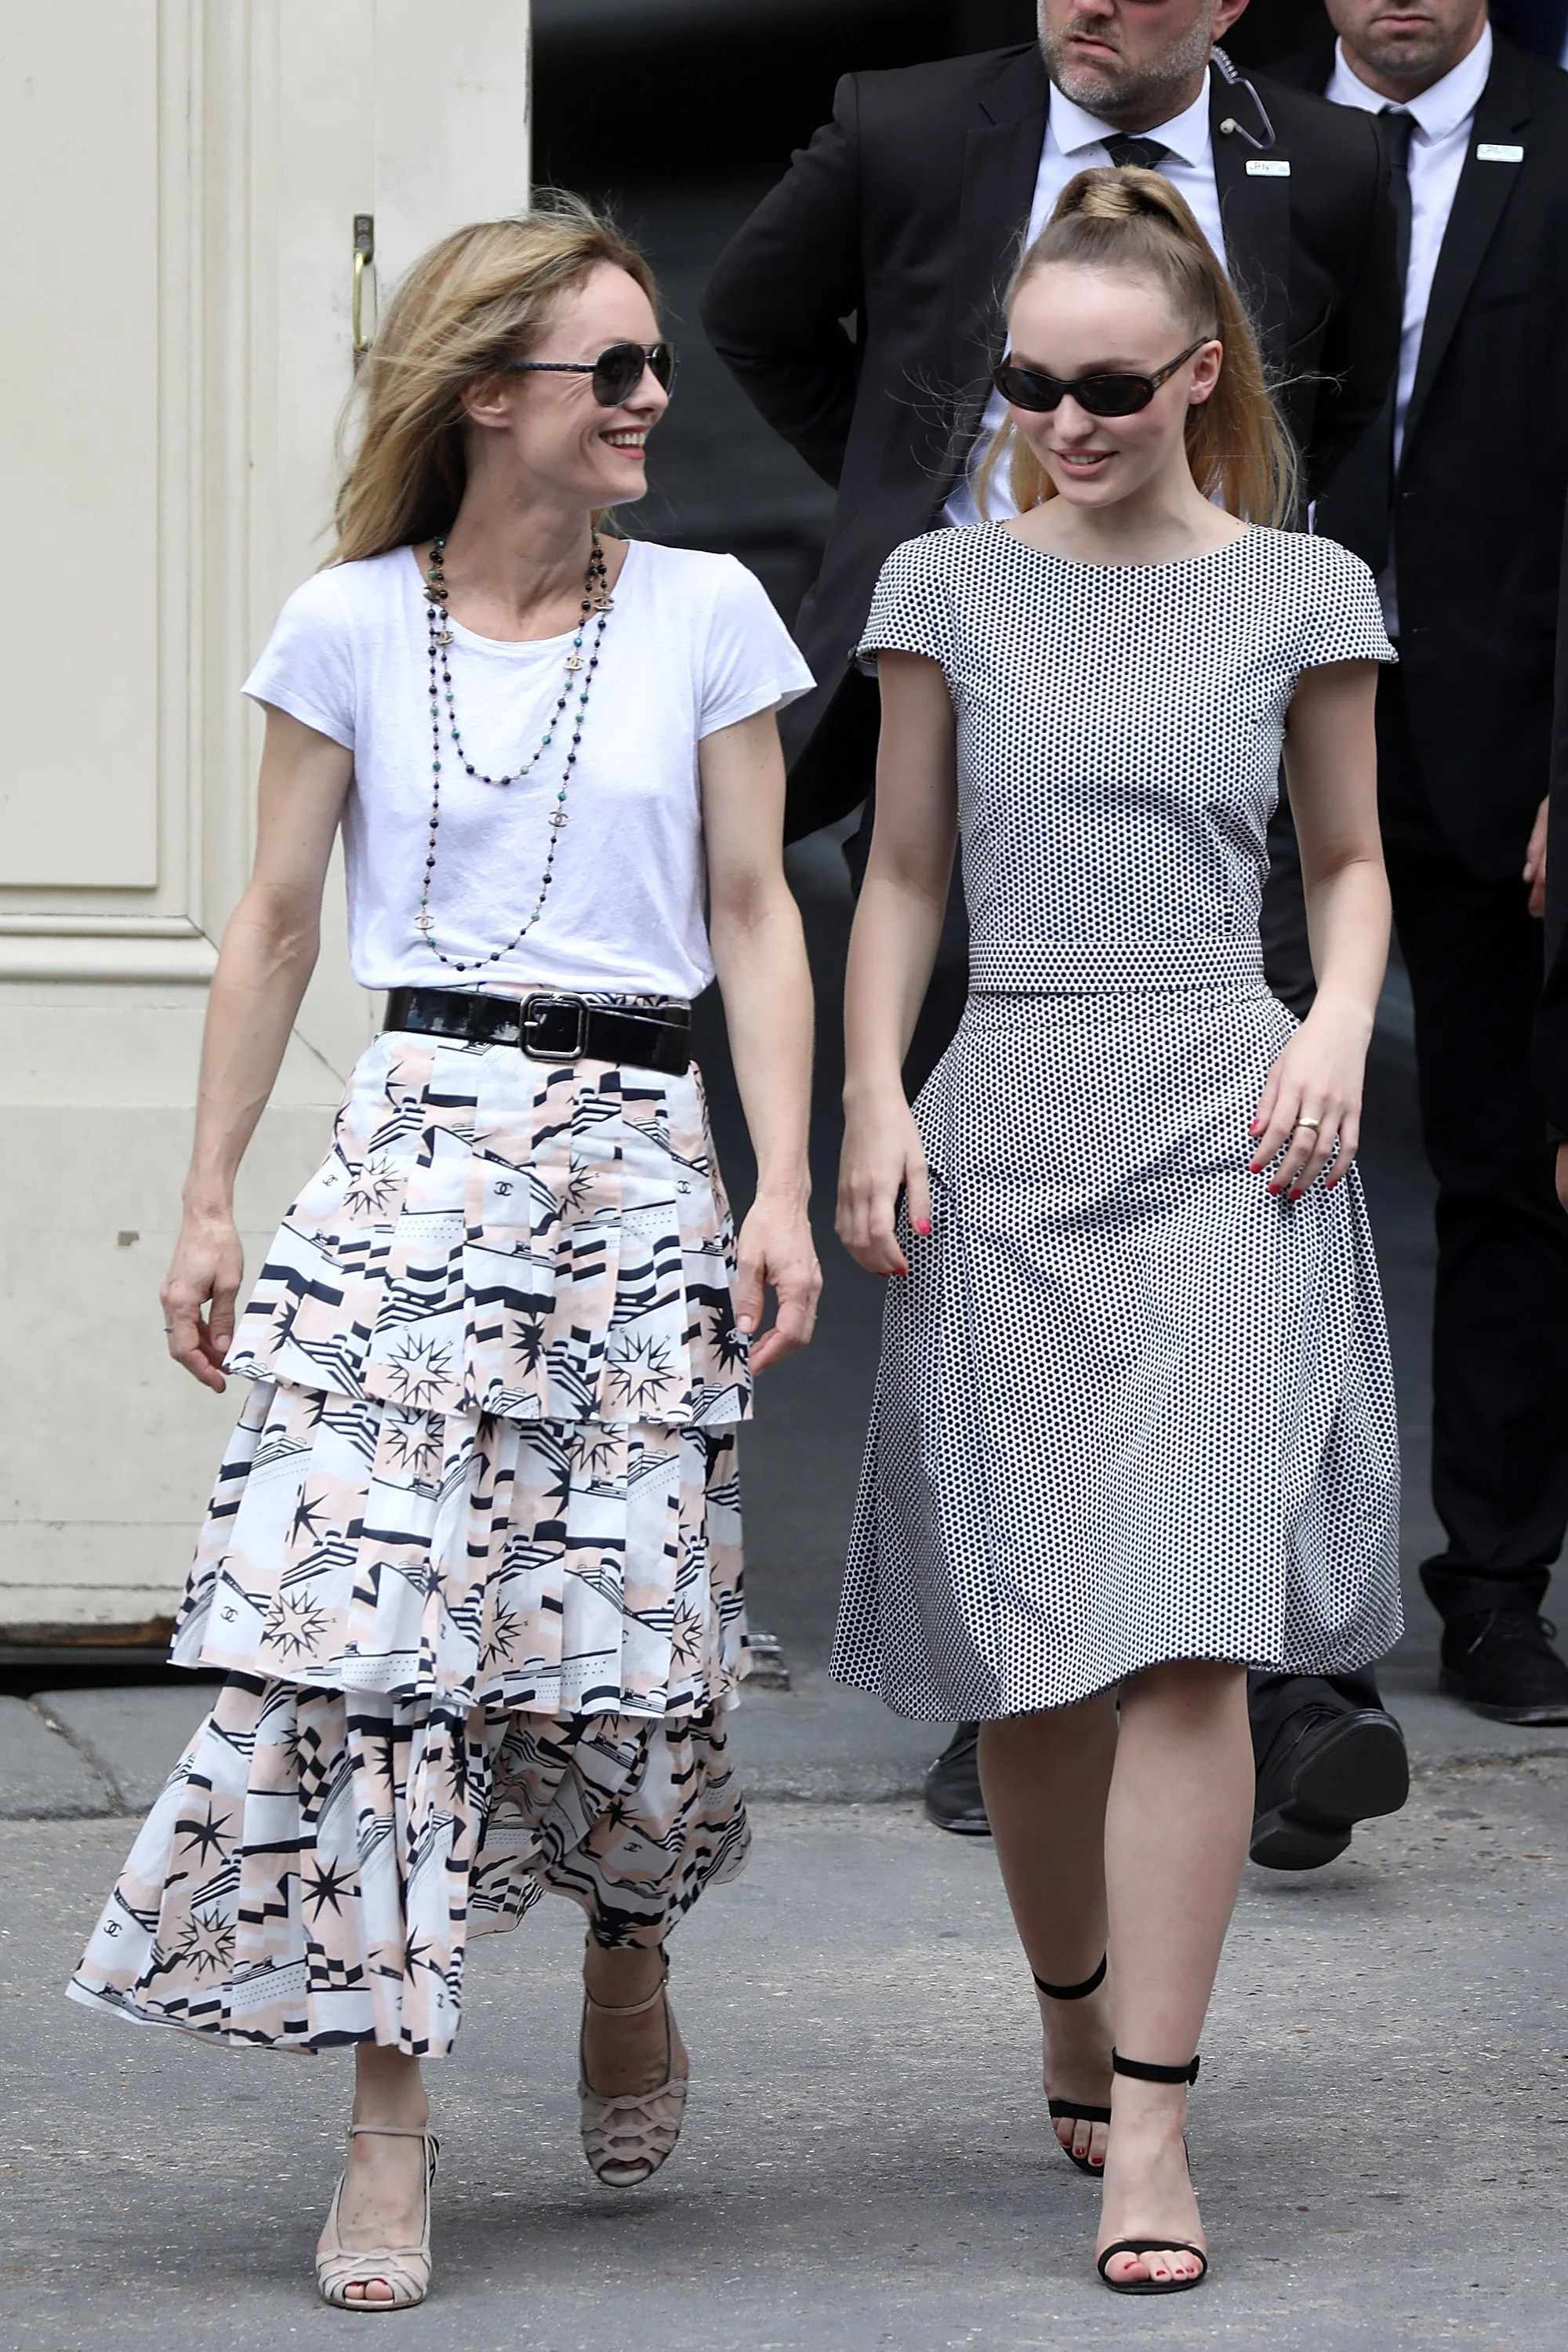 Newlywed Vanessa Paradis Beams as She Steps Out With Daughter Lily     Newlywed Vanessa Paradis Beams as She Steps Out With Daughter Lily Rose in  Paris   Entertainment Tonight